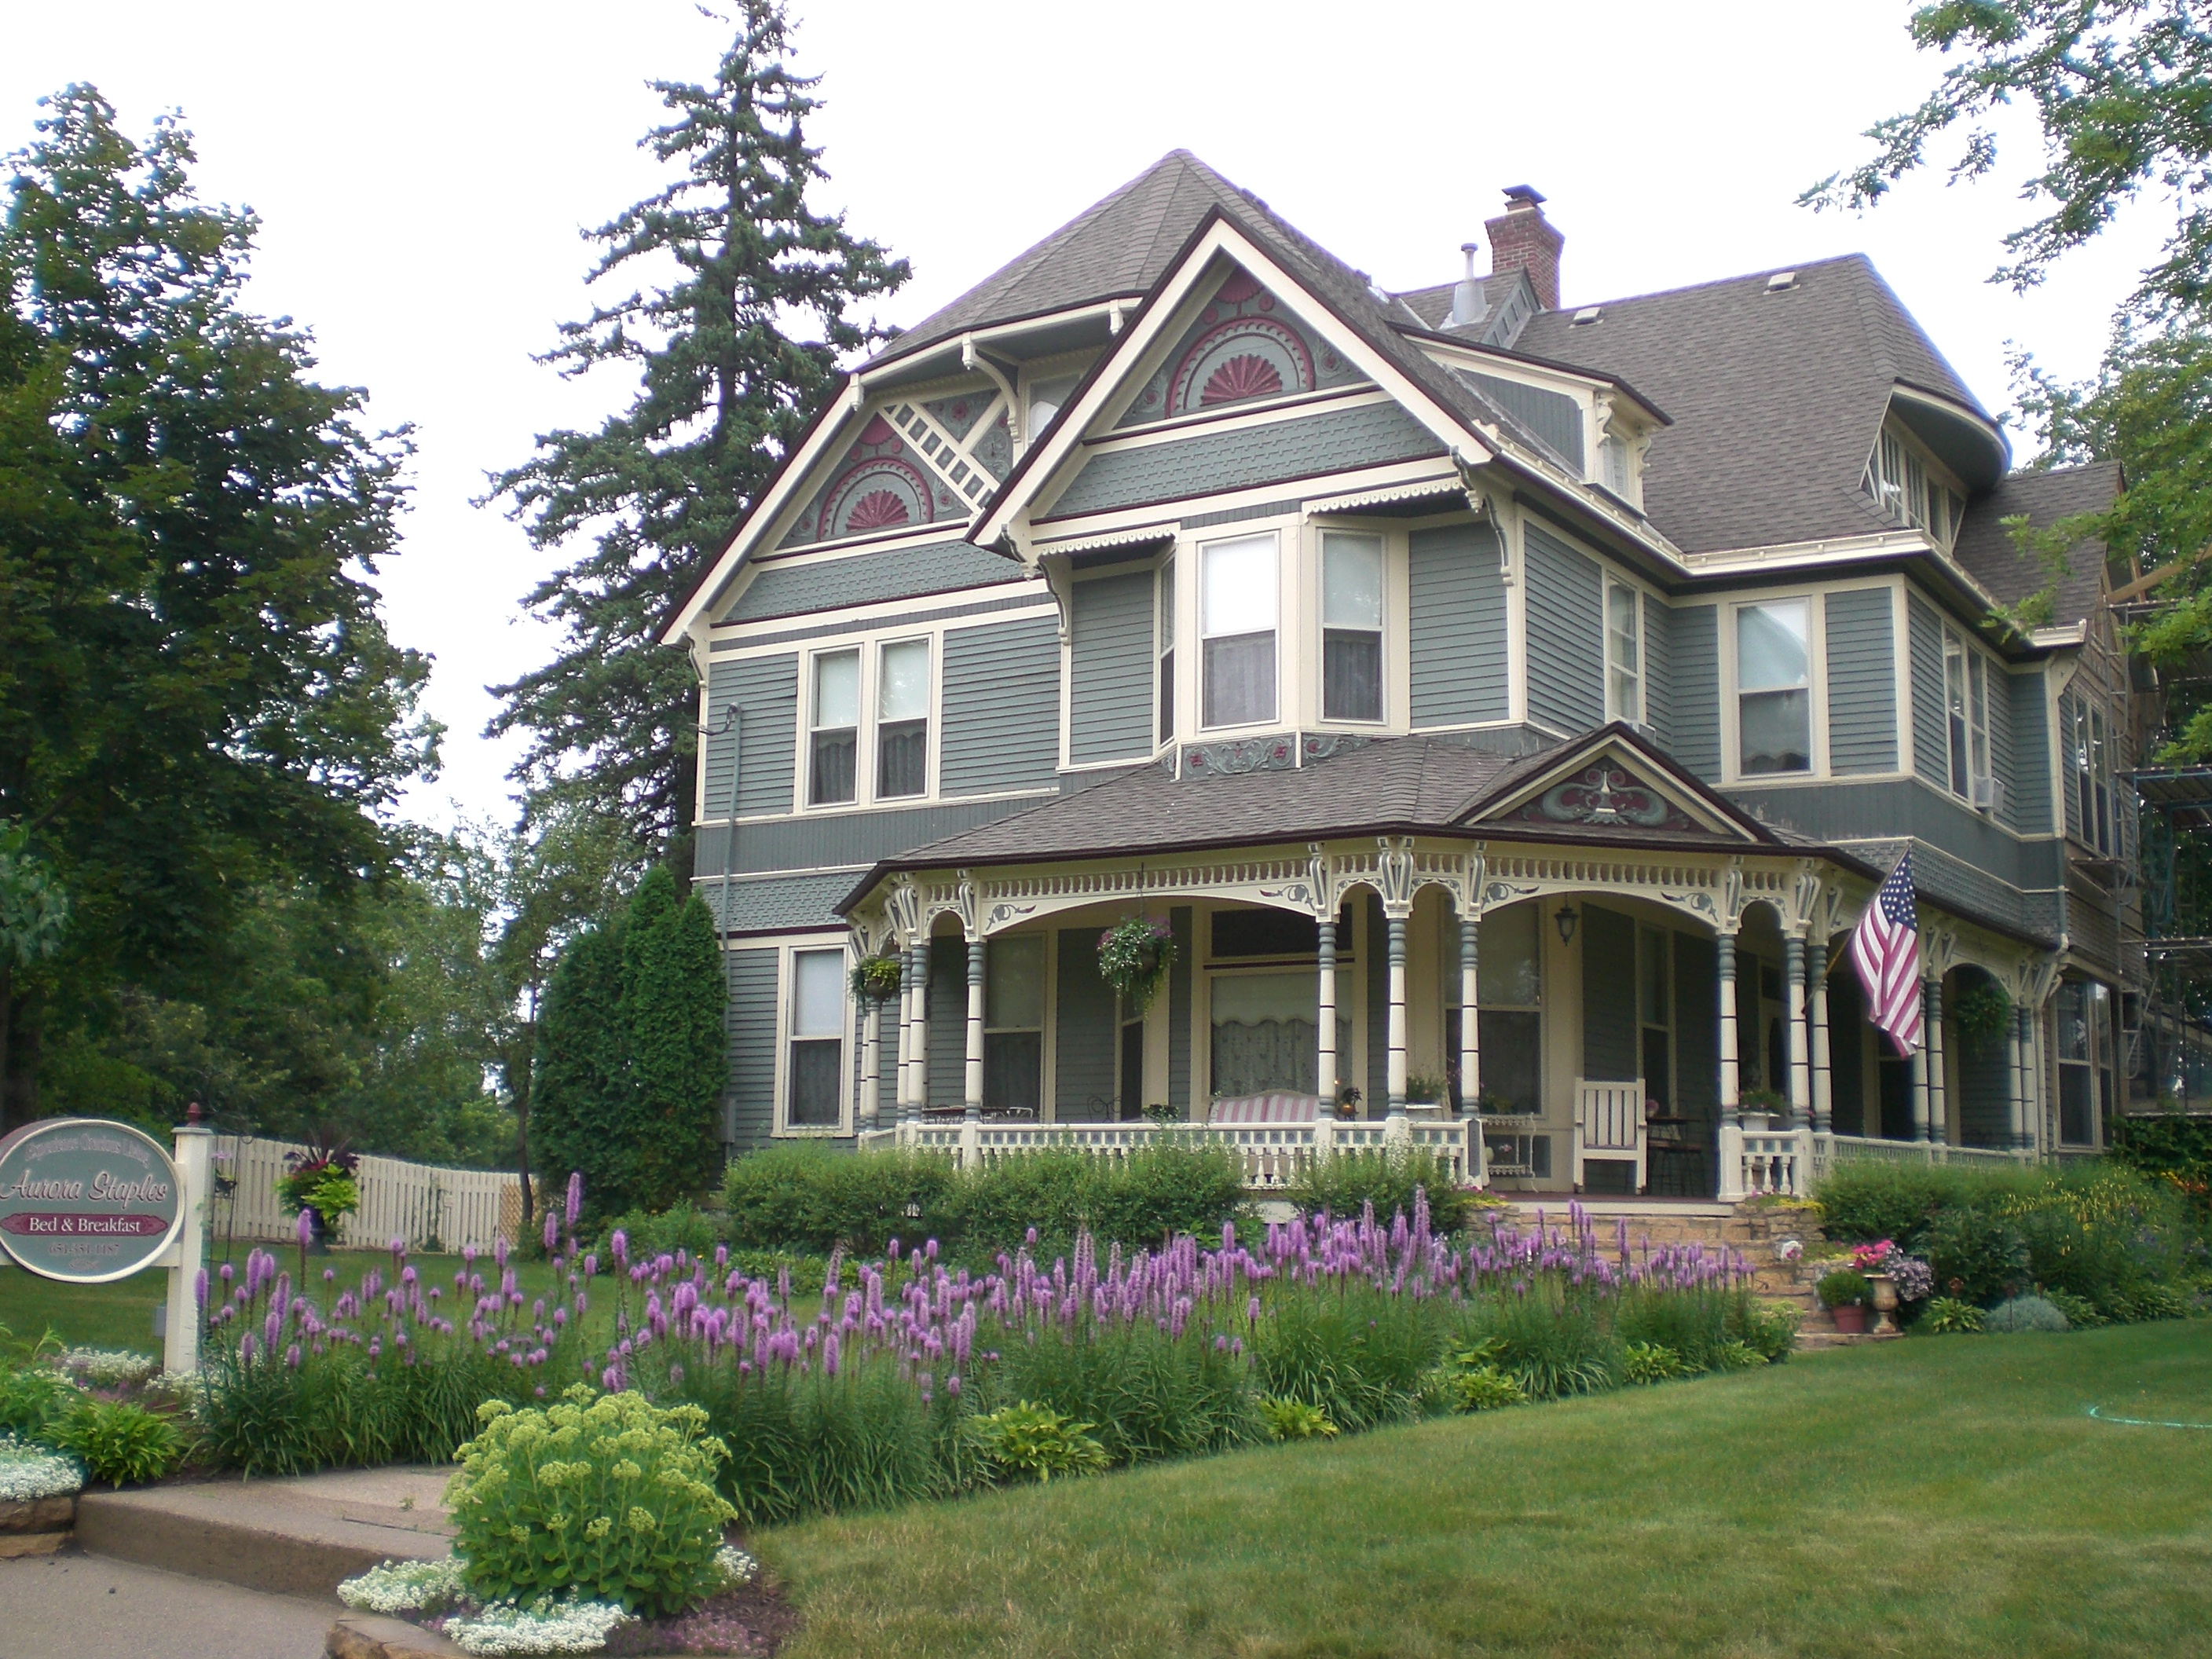 Aurora Staples Bed and Breakfast 32